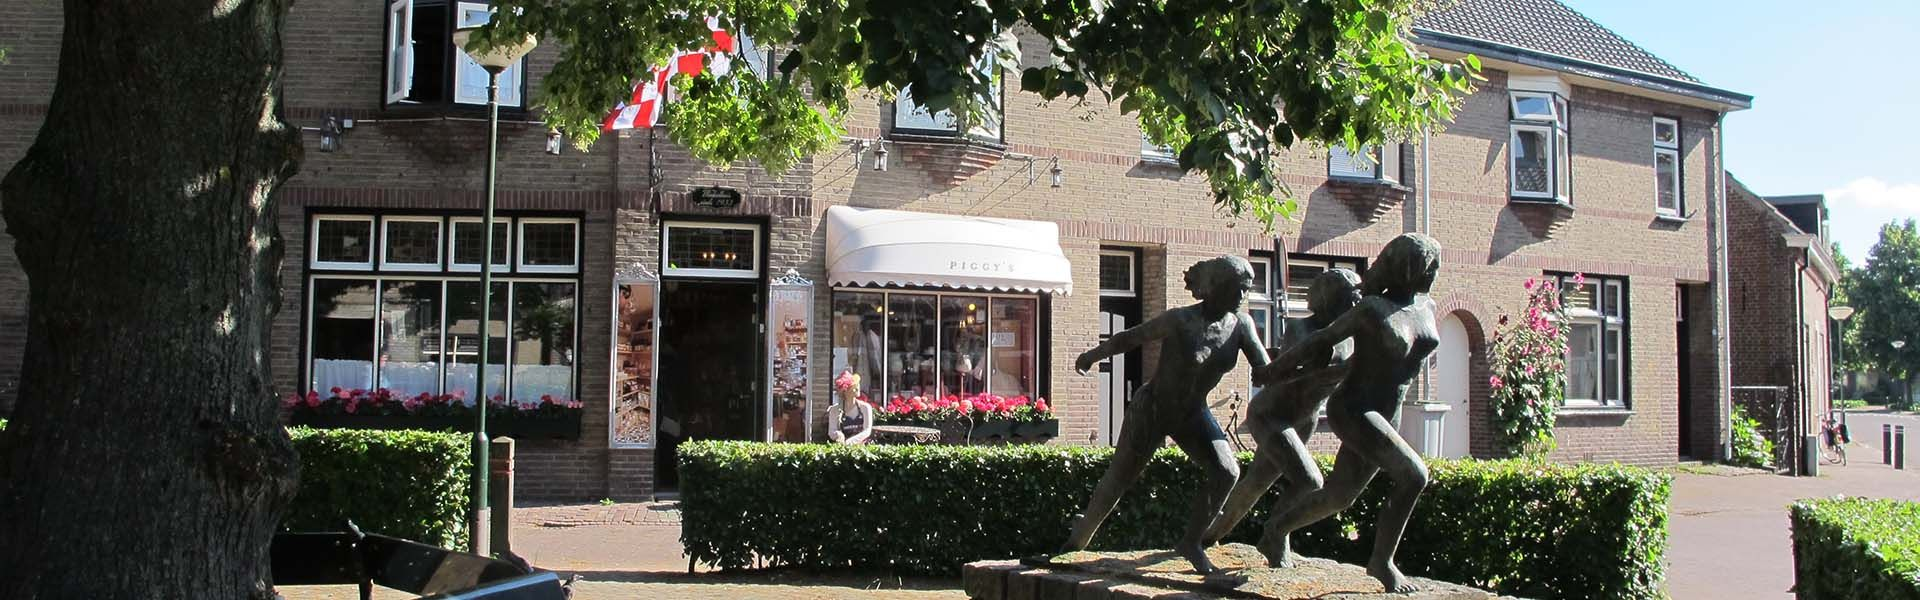 Kadoshop Piggy's Hilvarenbeek